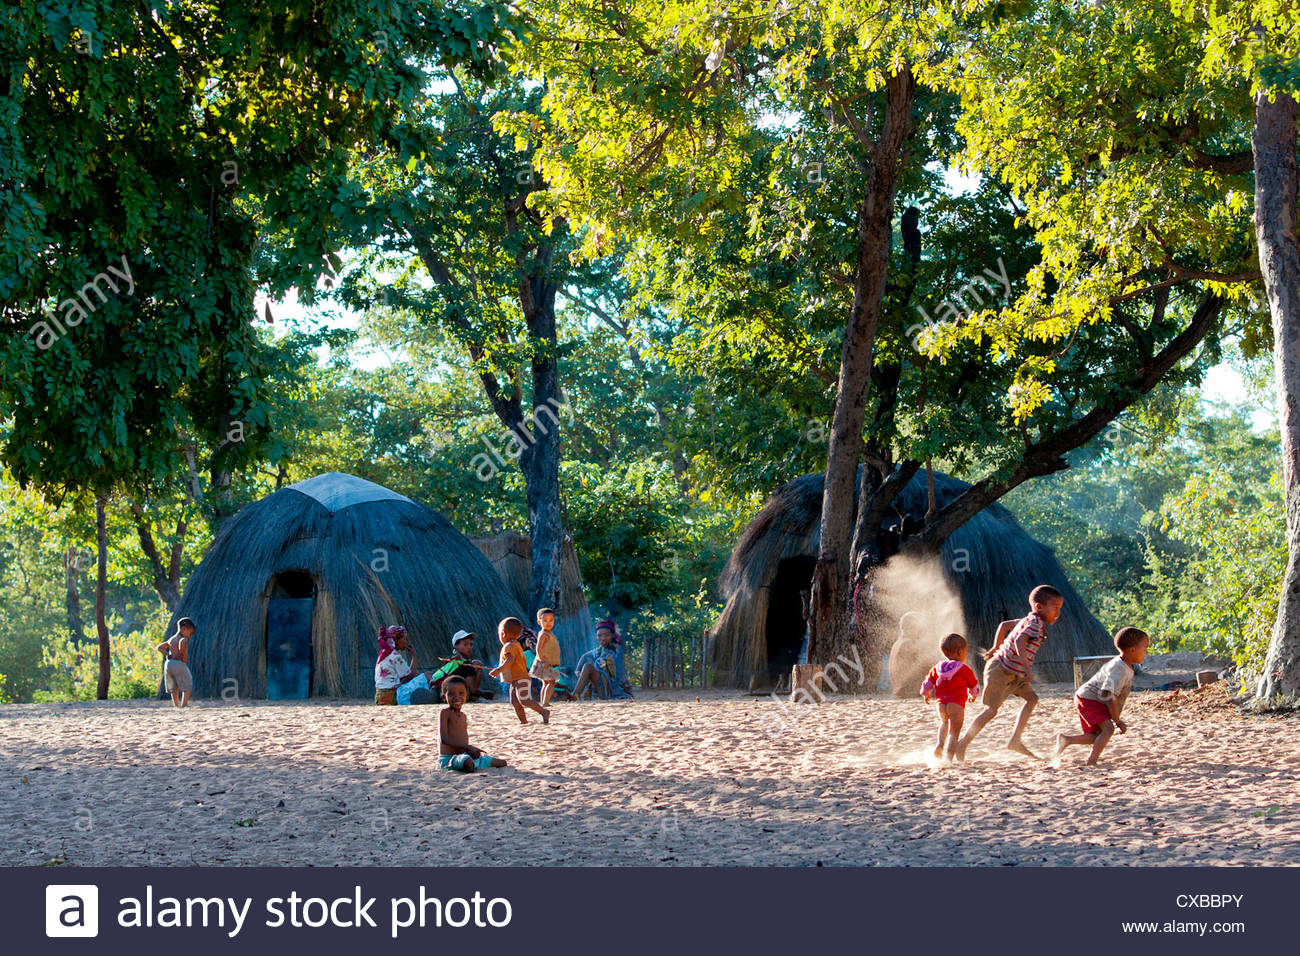 Jul'hoan !Kung Bushman in their village, children playing, Bushmanland, Kalahari Desert, Namibia, Africa - Stock Image